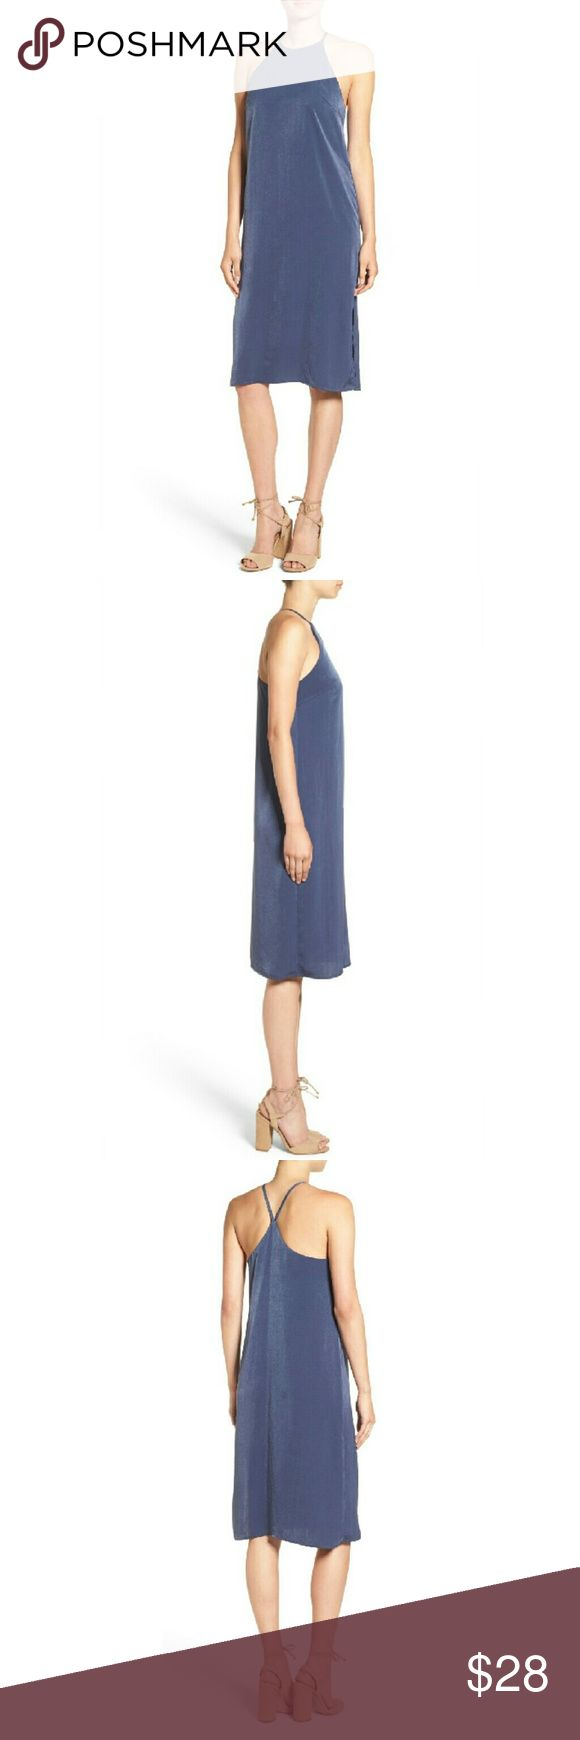 """Soprano High Neck Shift Dress This sleek, body-skimming shift dress in blue features a gorgeous suede like finish that brings out a silver sheen.  High neck and leg baring slit add a sexy vibe while the simple sleek design adds sophistication. Perfect for a cocktail party or a weekend getaway.  Partially lined. 100% Polyester.   Bust 17"""" lying flat (underarm to underarm) Waist approx 18"""" lying flat Legnth 43.5"""" Soprano Dresses Midi"""